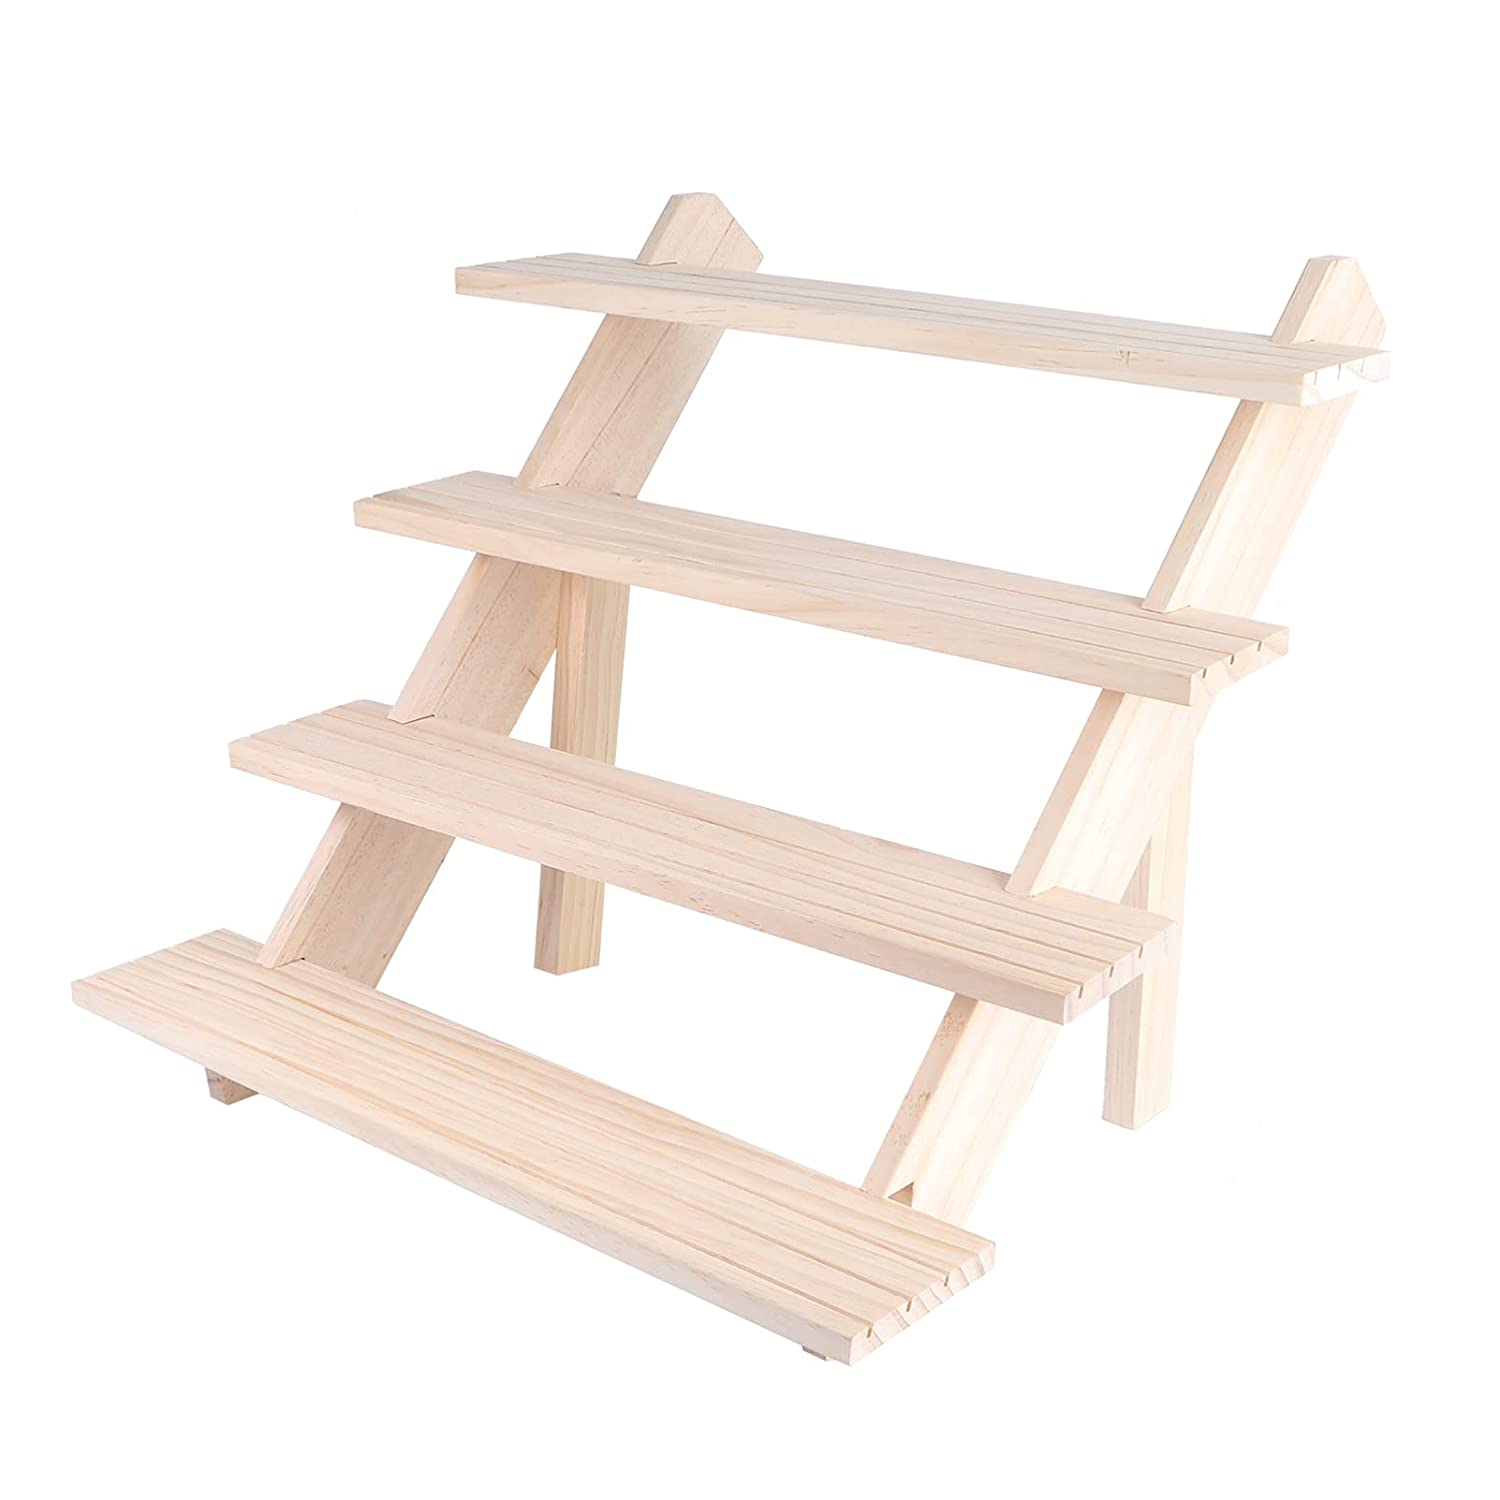 FOMIYES 1Pcs Wooden Jewelry Rack 4- Oklahoma City Mall 55% OFF Card H layer Display Earring